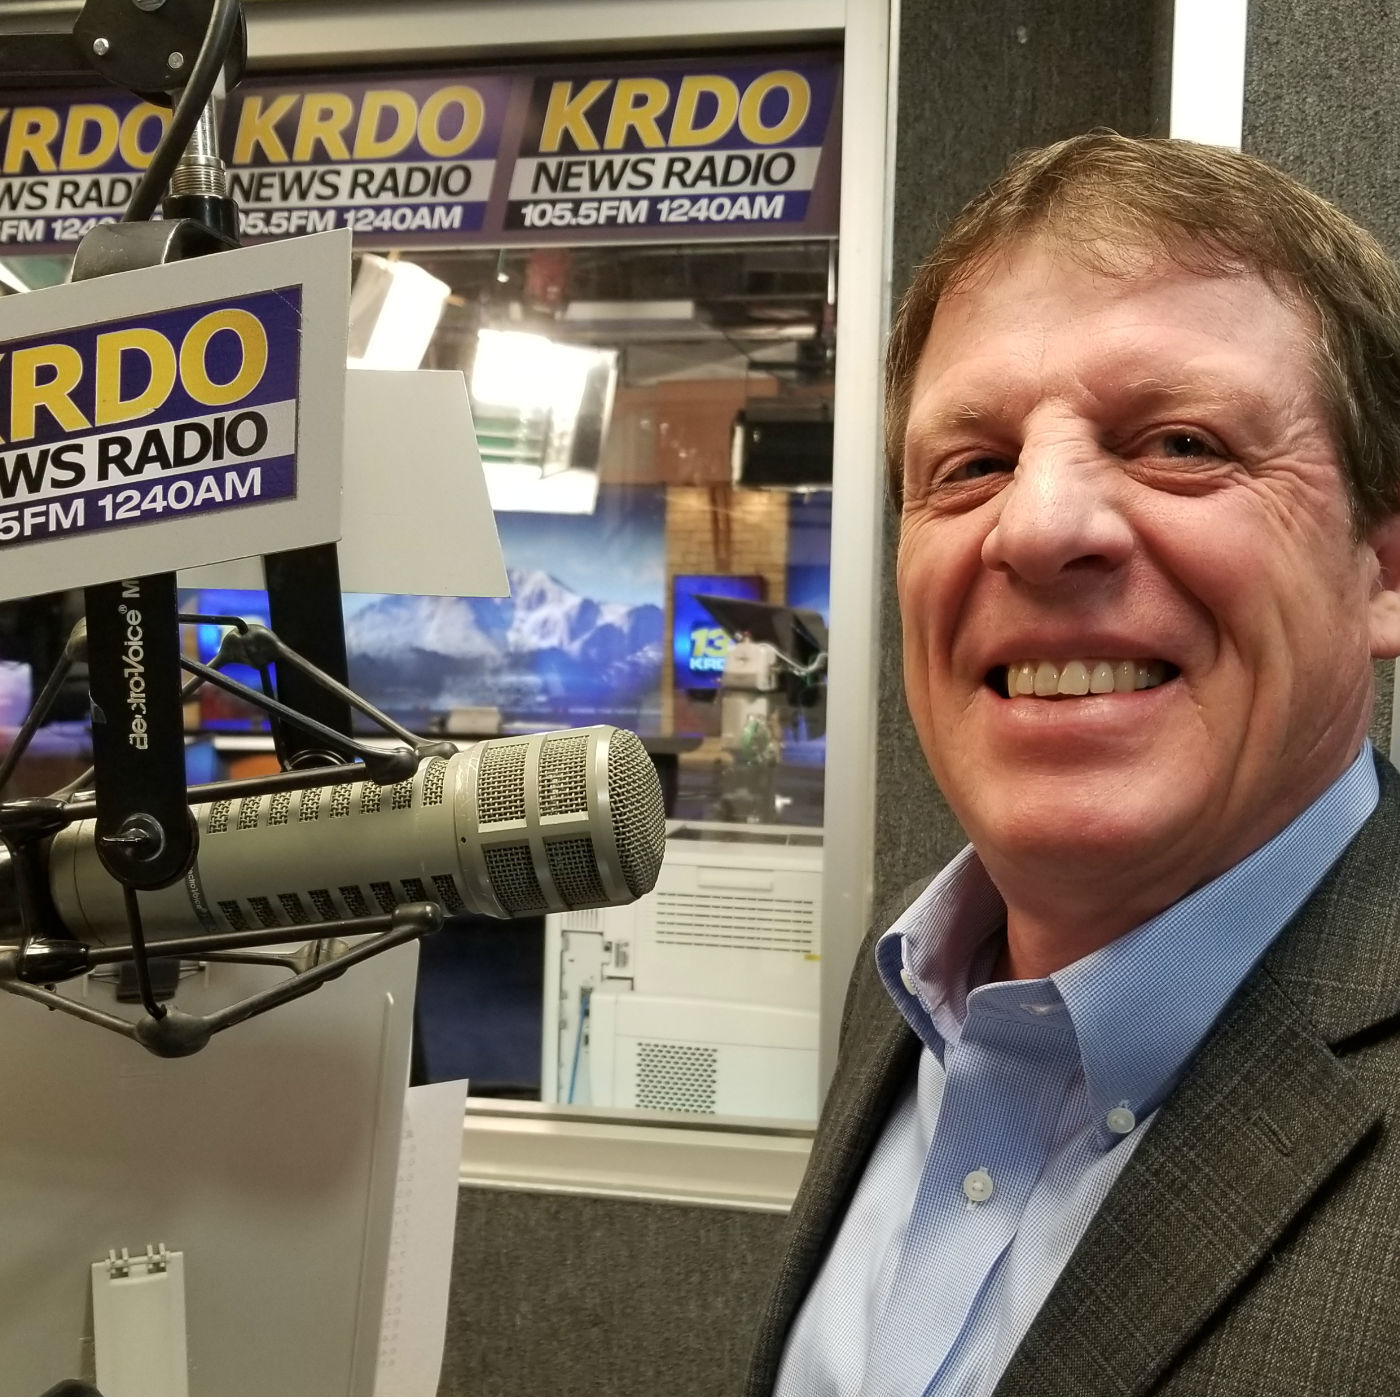 KRDO's Morning News - September 24, 2018